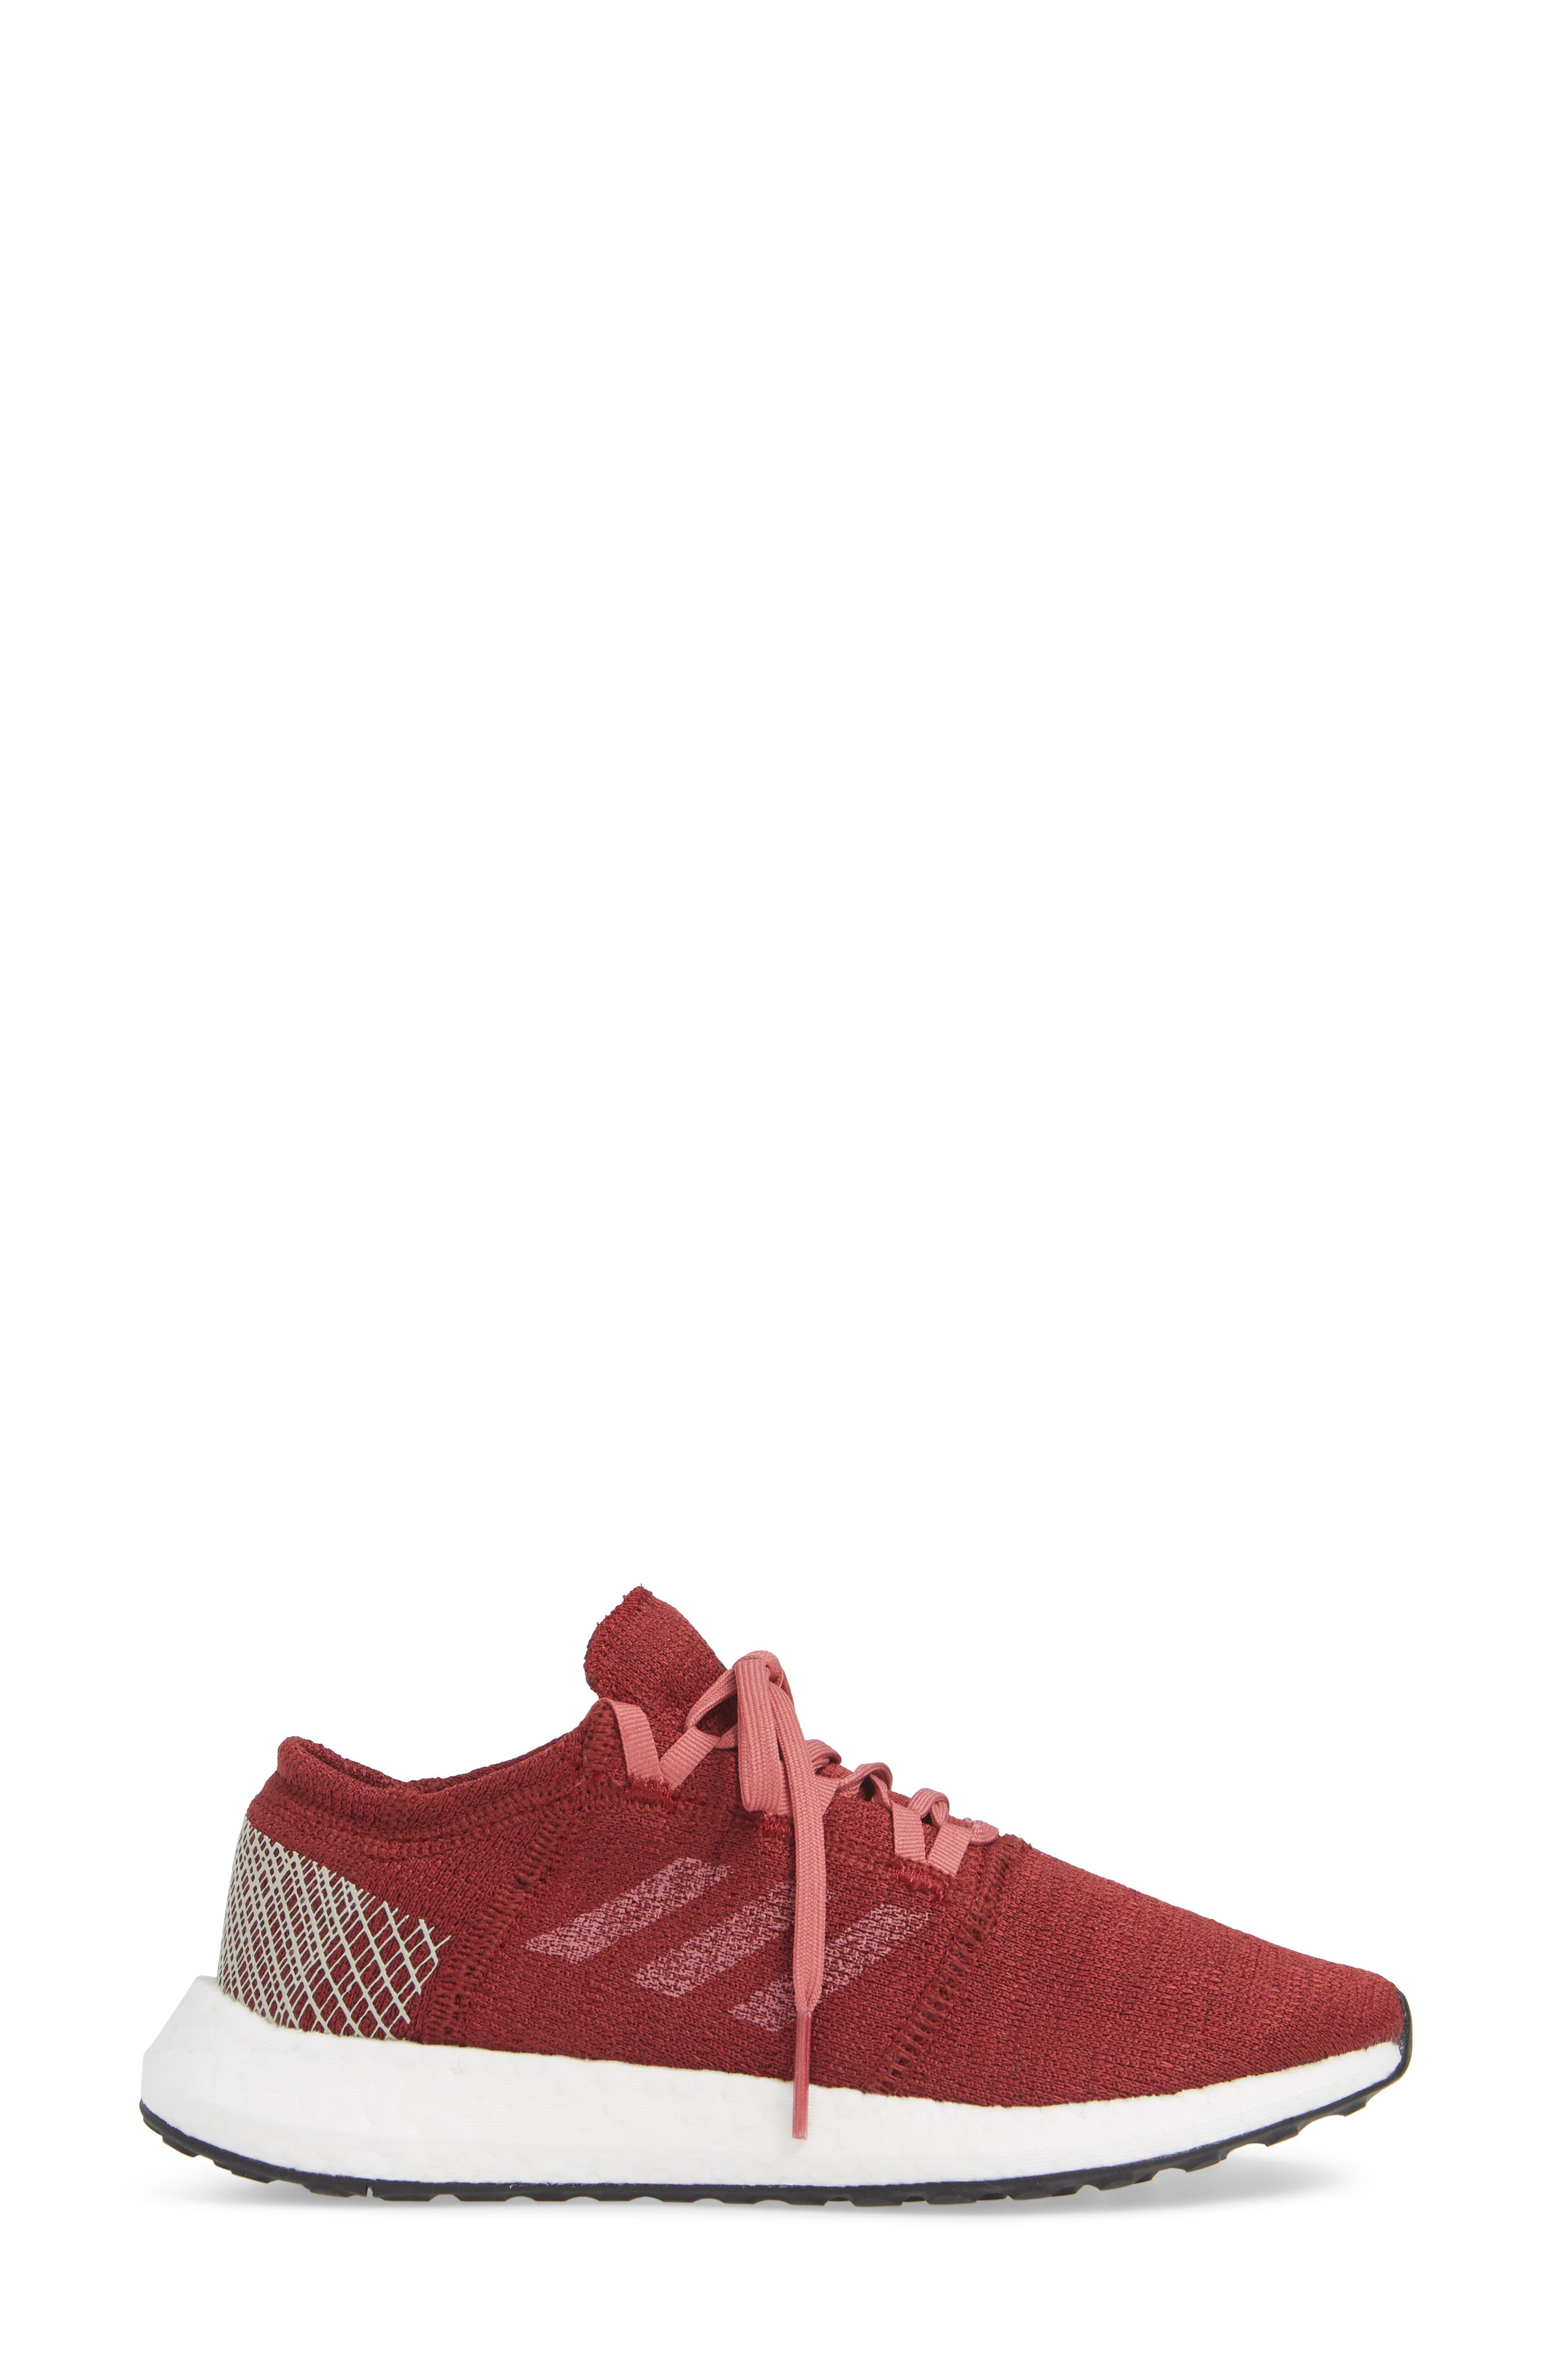 PureBoost X Element Knit Running Shoe,                             Alternate thumbnail 3, color,                             NOBLE MAROON/ MAROON/ BROWN